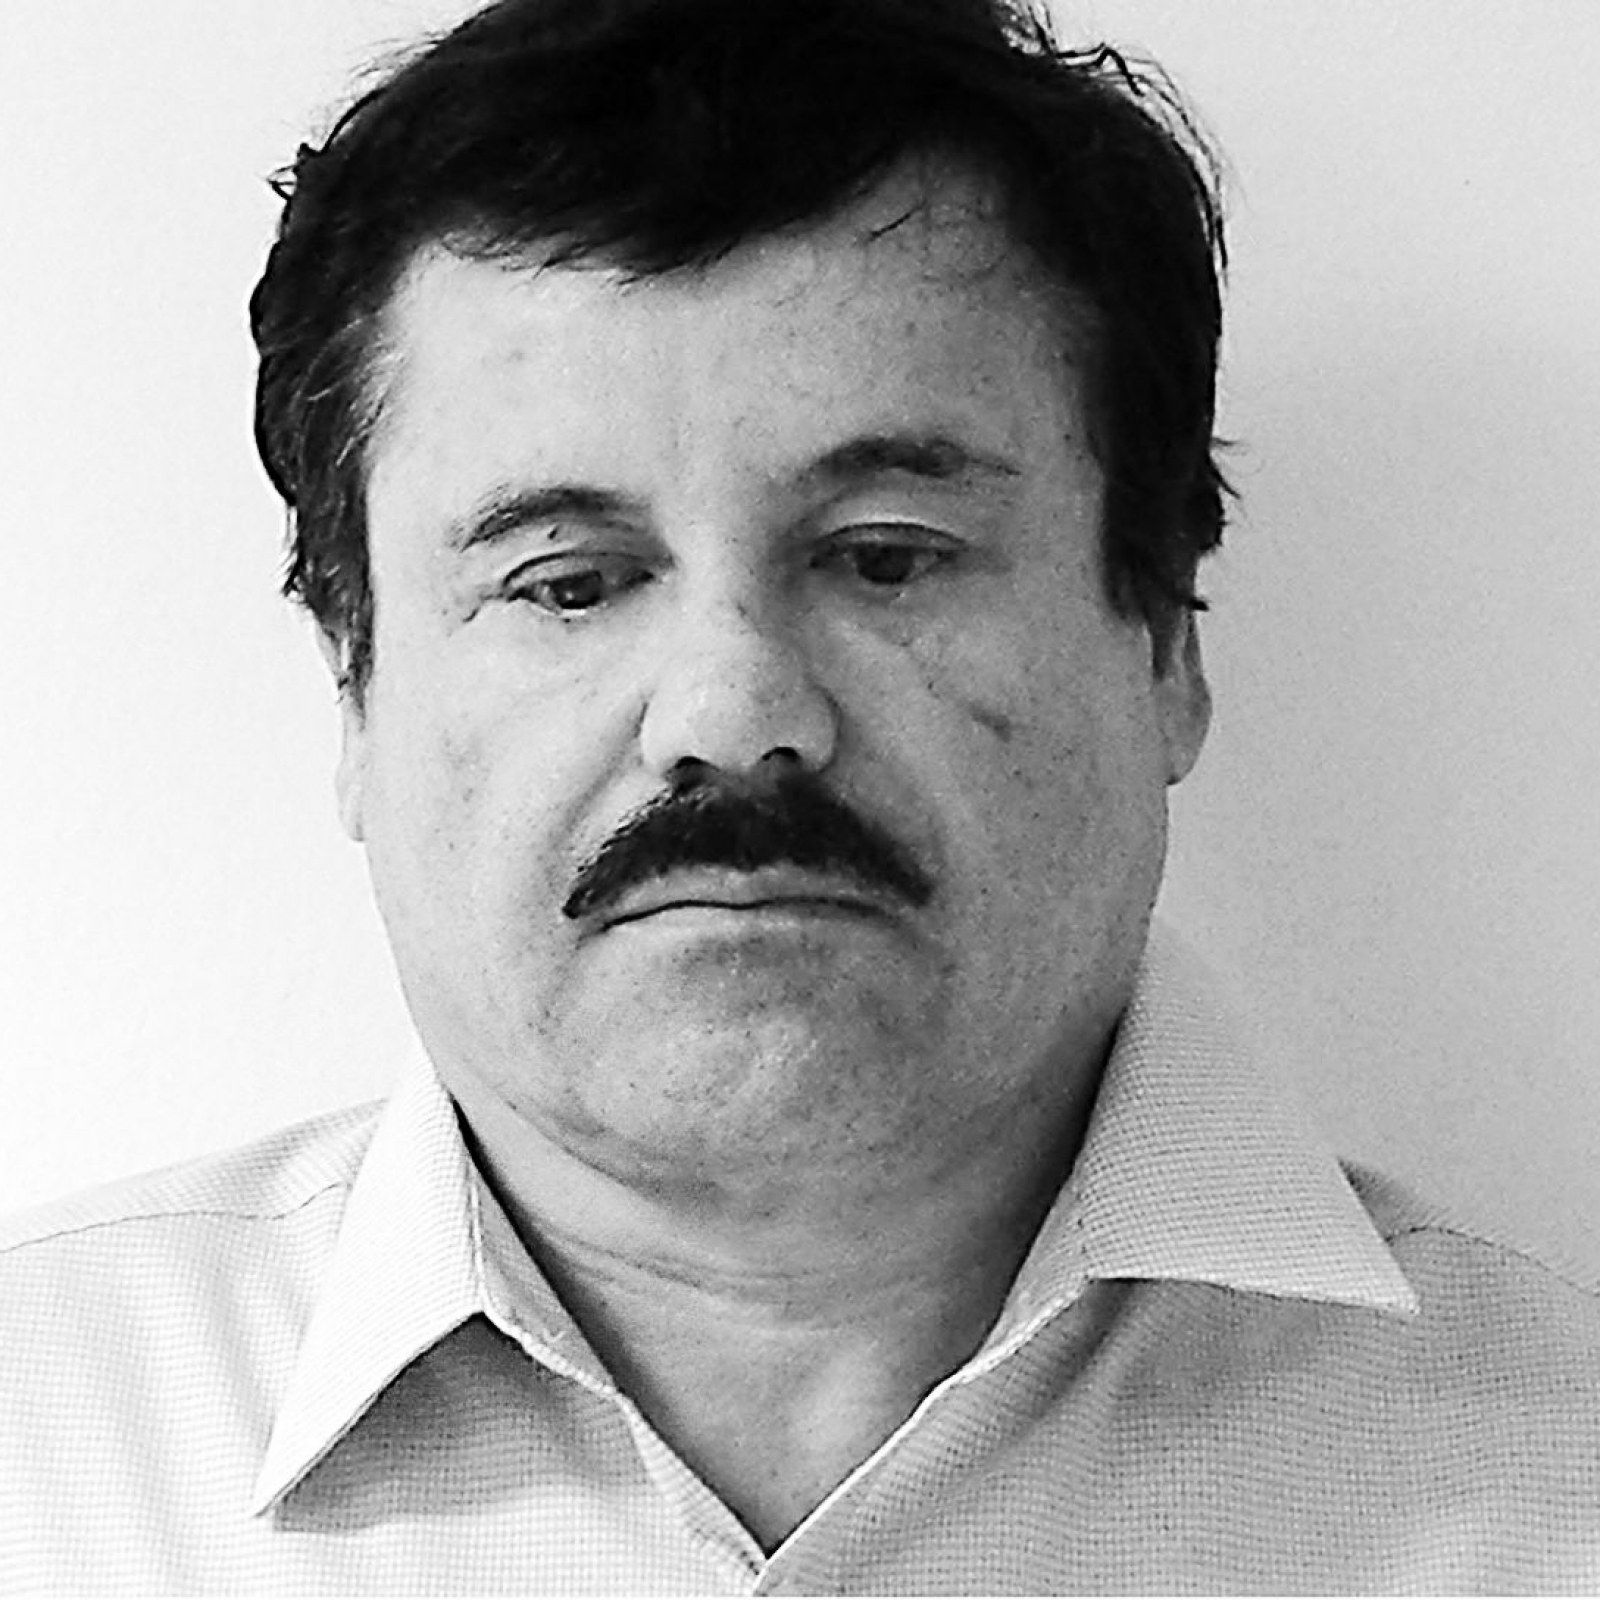 1600x1600 El Chapo Is Going Down. How Many Drug Lords, Assassins ...